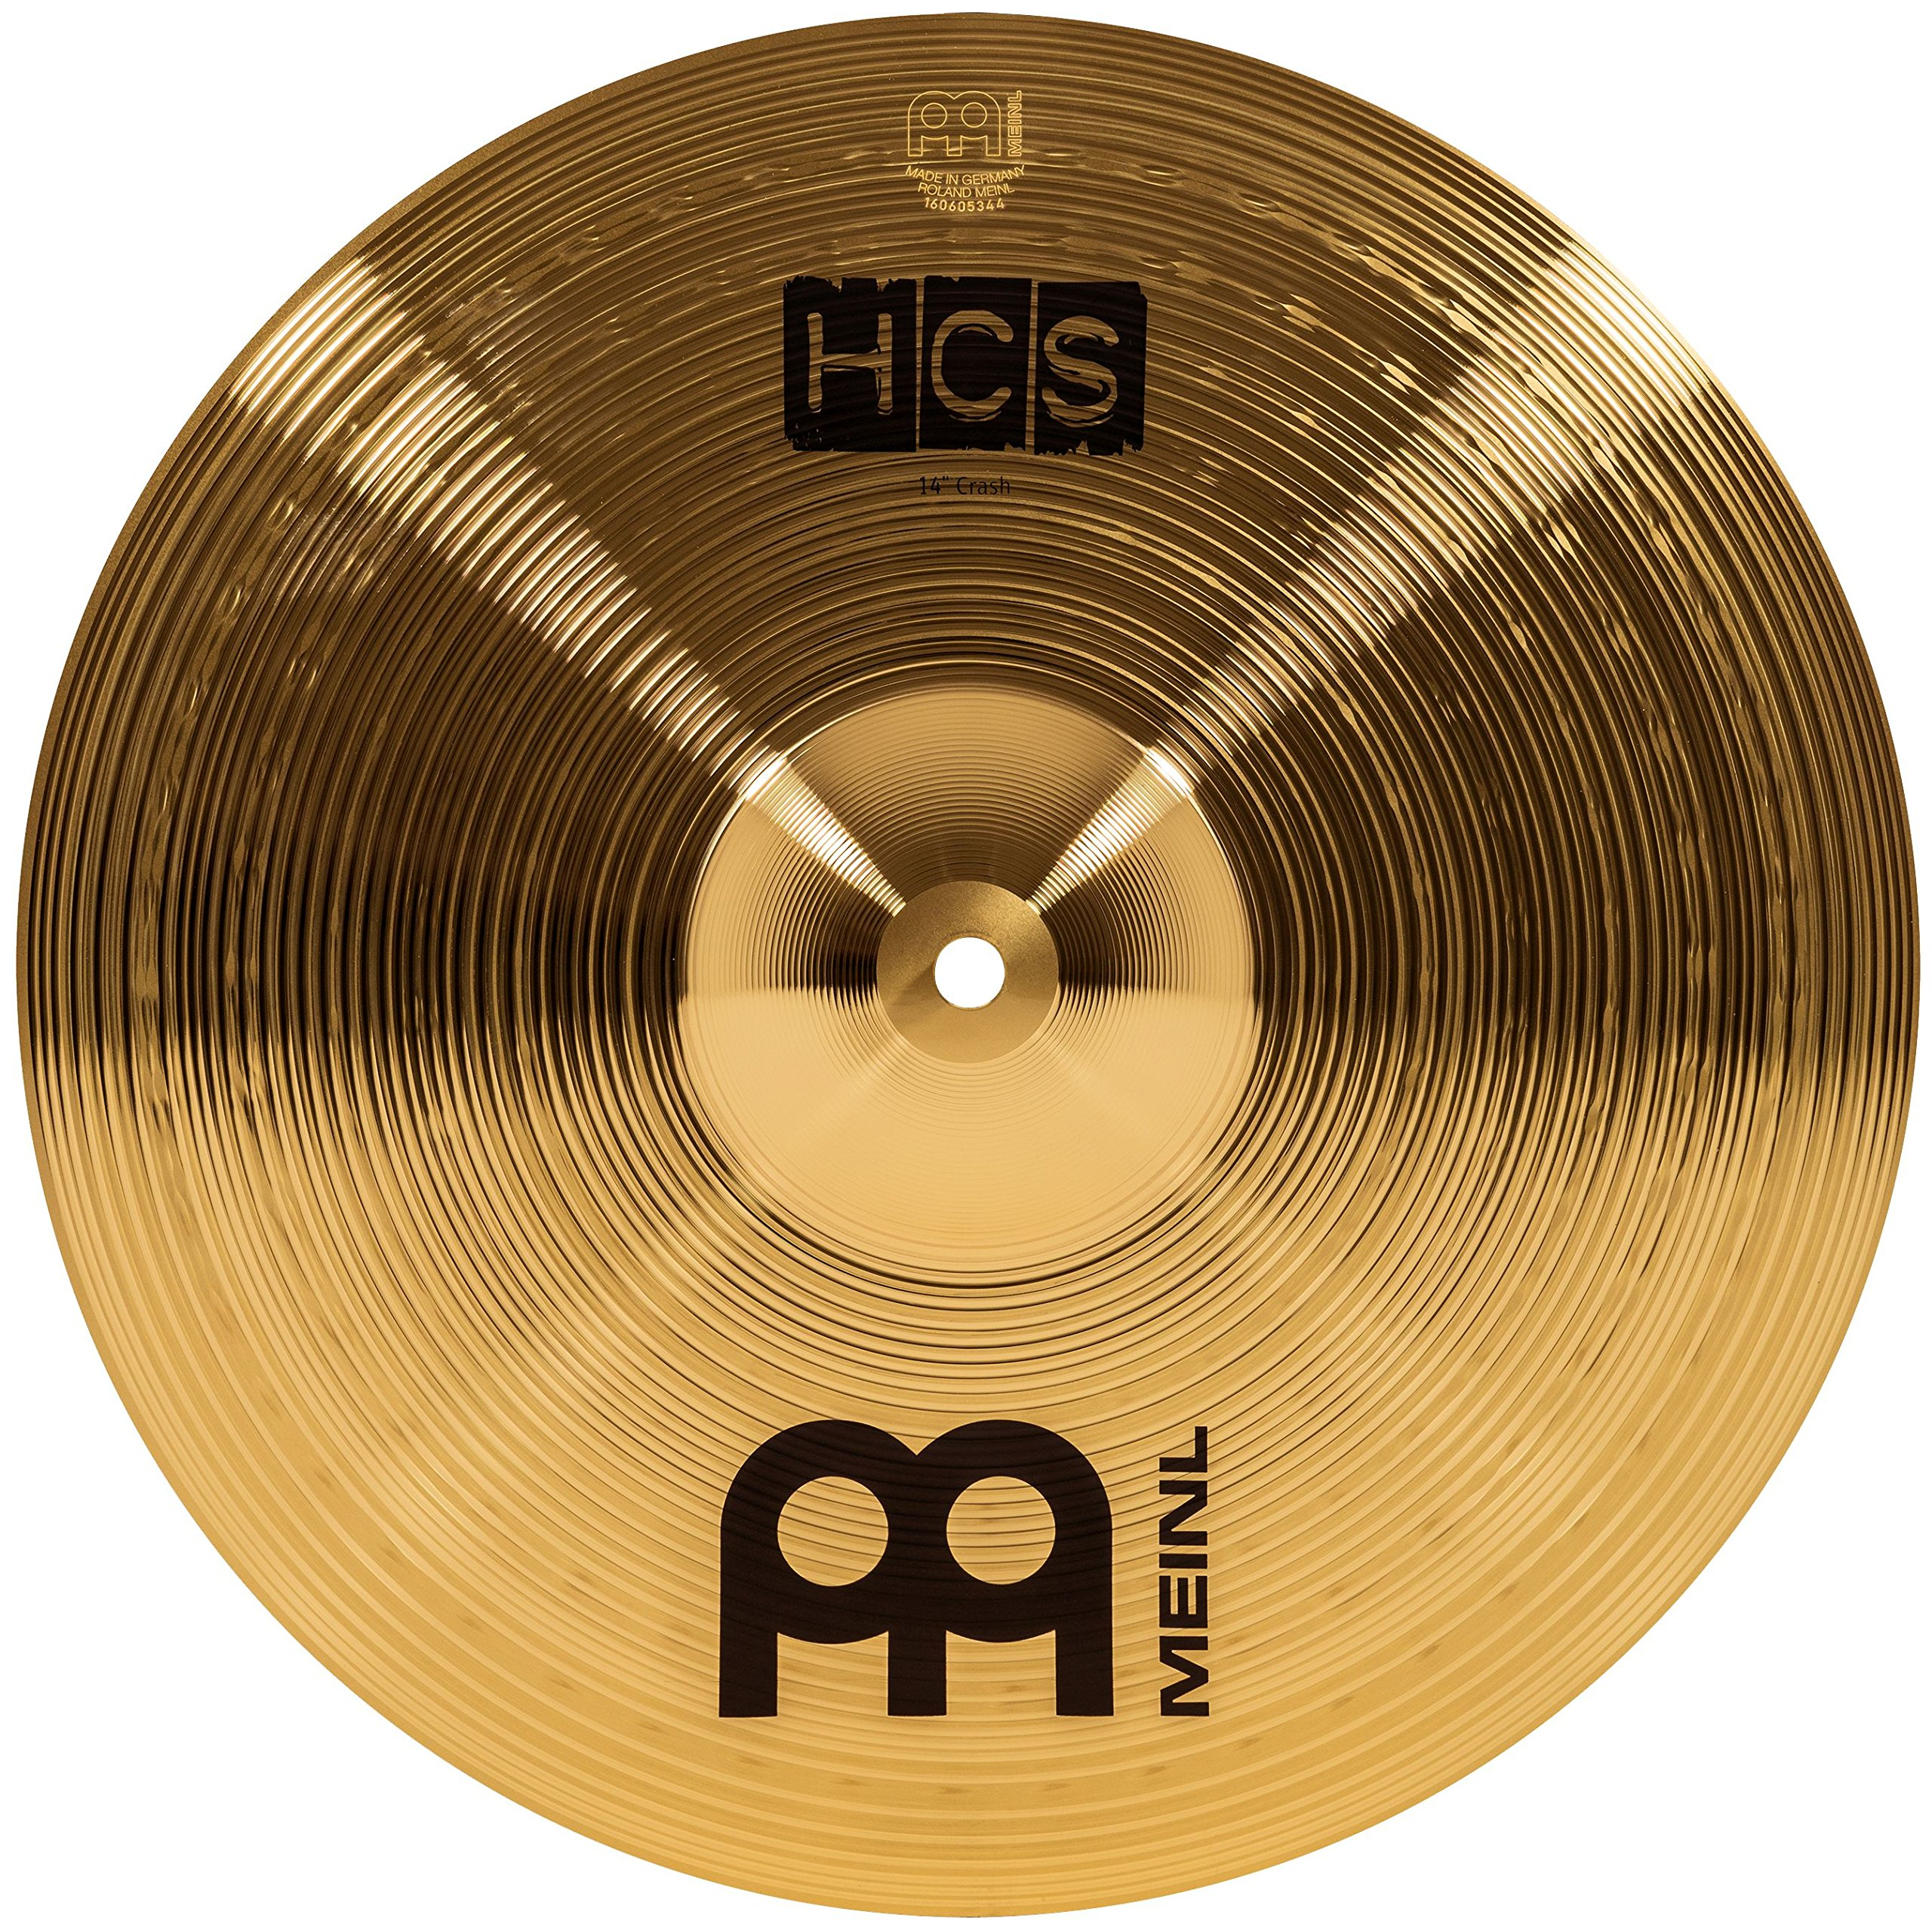 Meinl 14'' Crash Cymbal - HCS Traditional Finish Brass for Drum Set, Made In Germany, 2-YEAR WARRANTY (HCS14C) by Meinl Cymbals